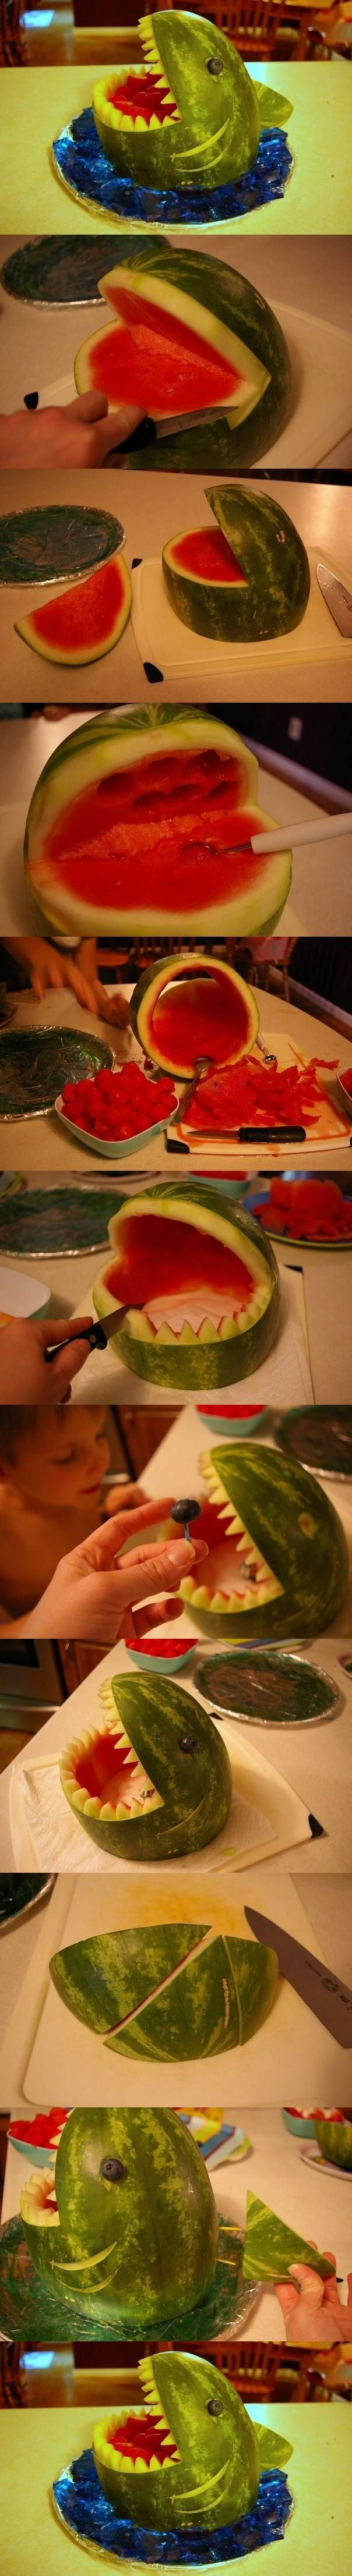 Food Art DIY - Watermelon Shark | iCreativeIdeas.com Follow Us on Facebook --> https://www.facebook.com/icreativeideas